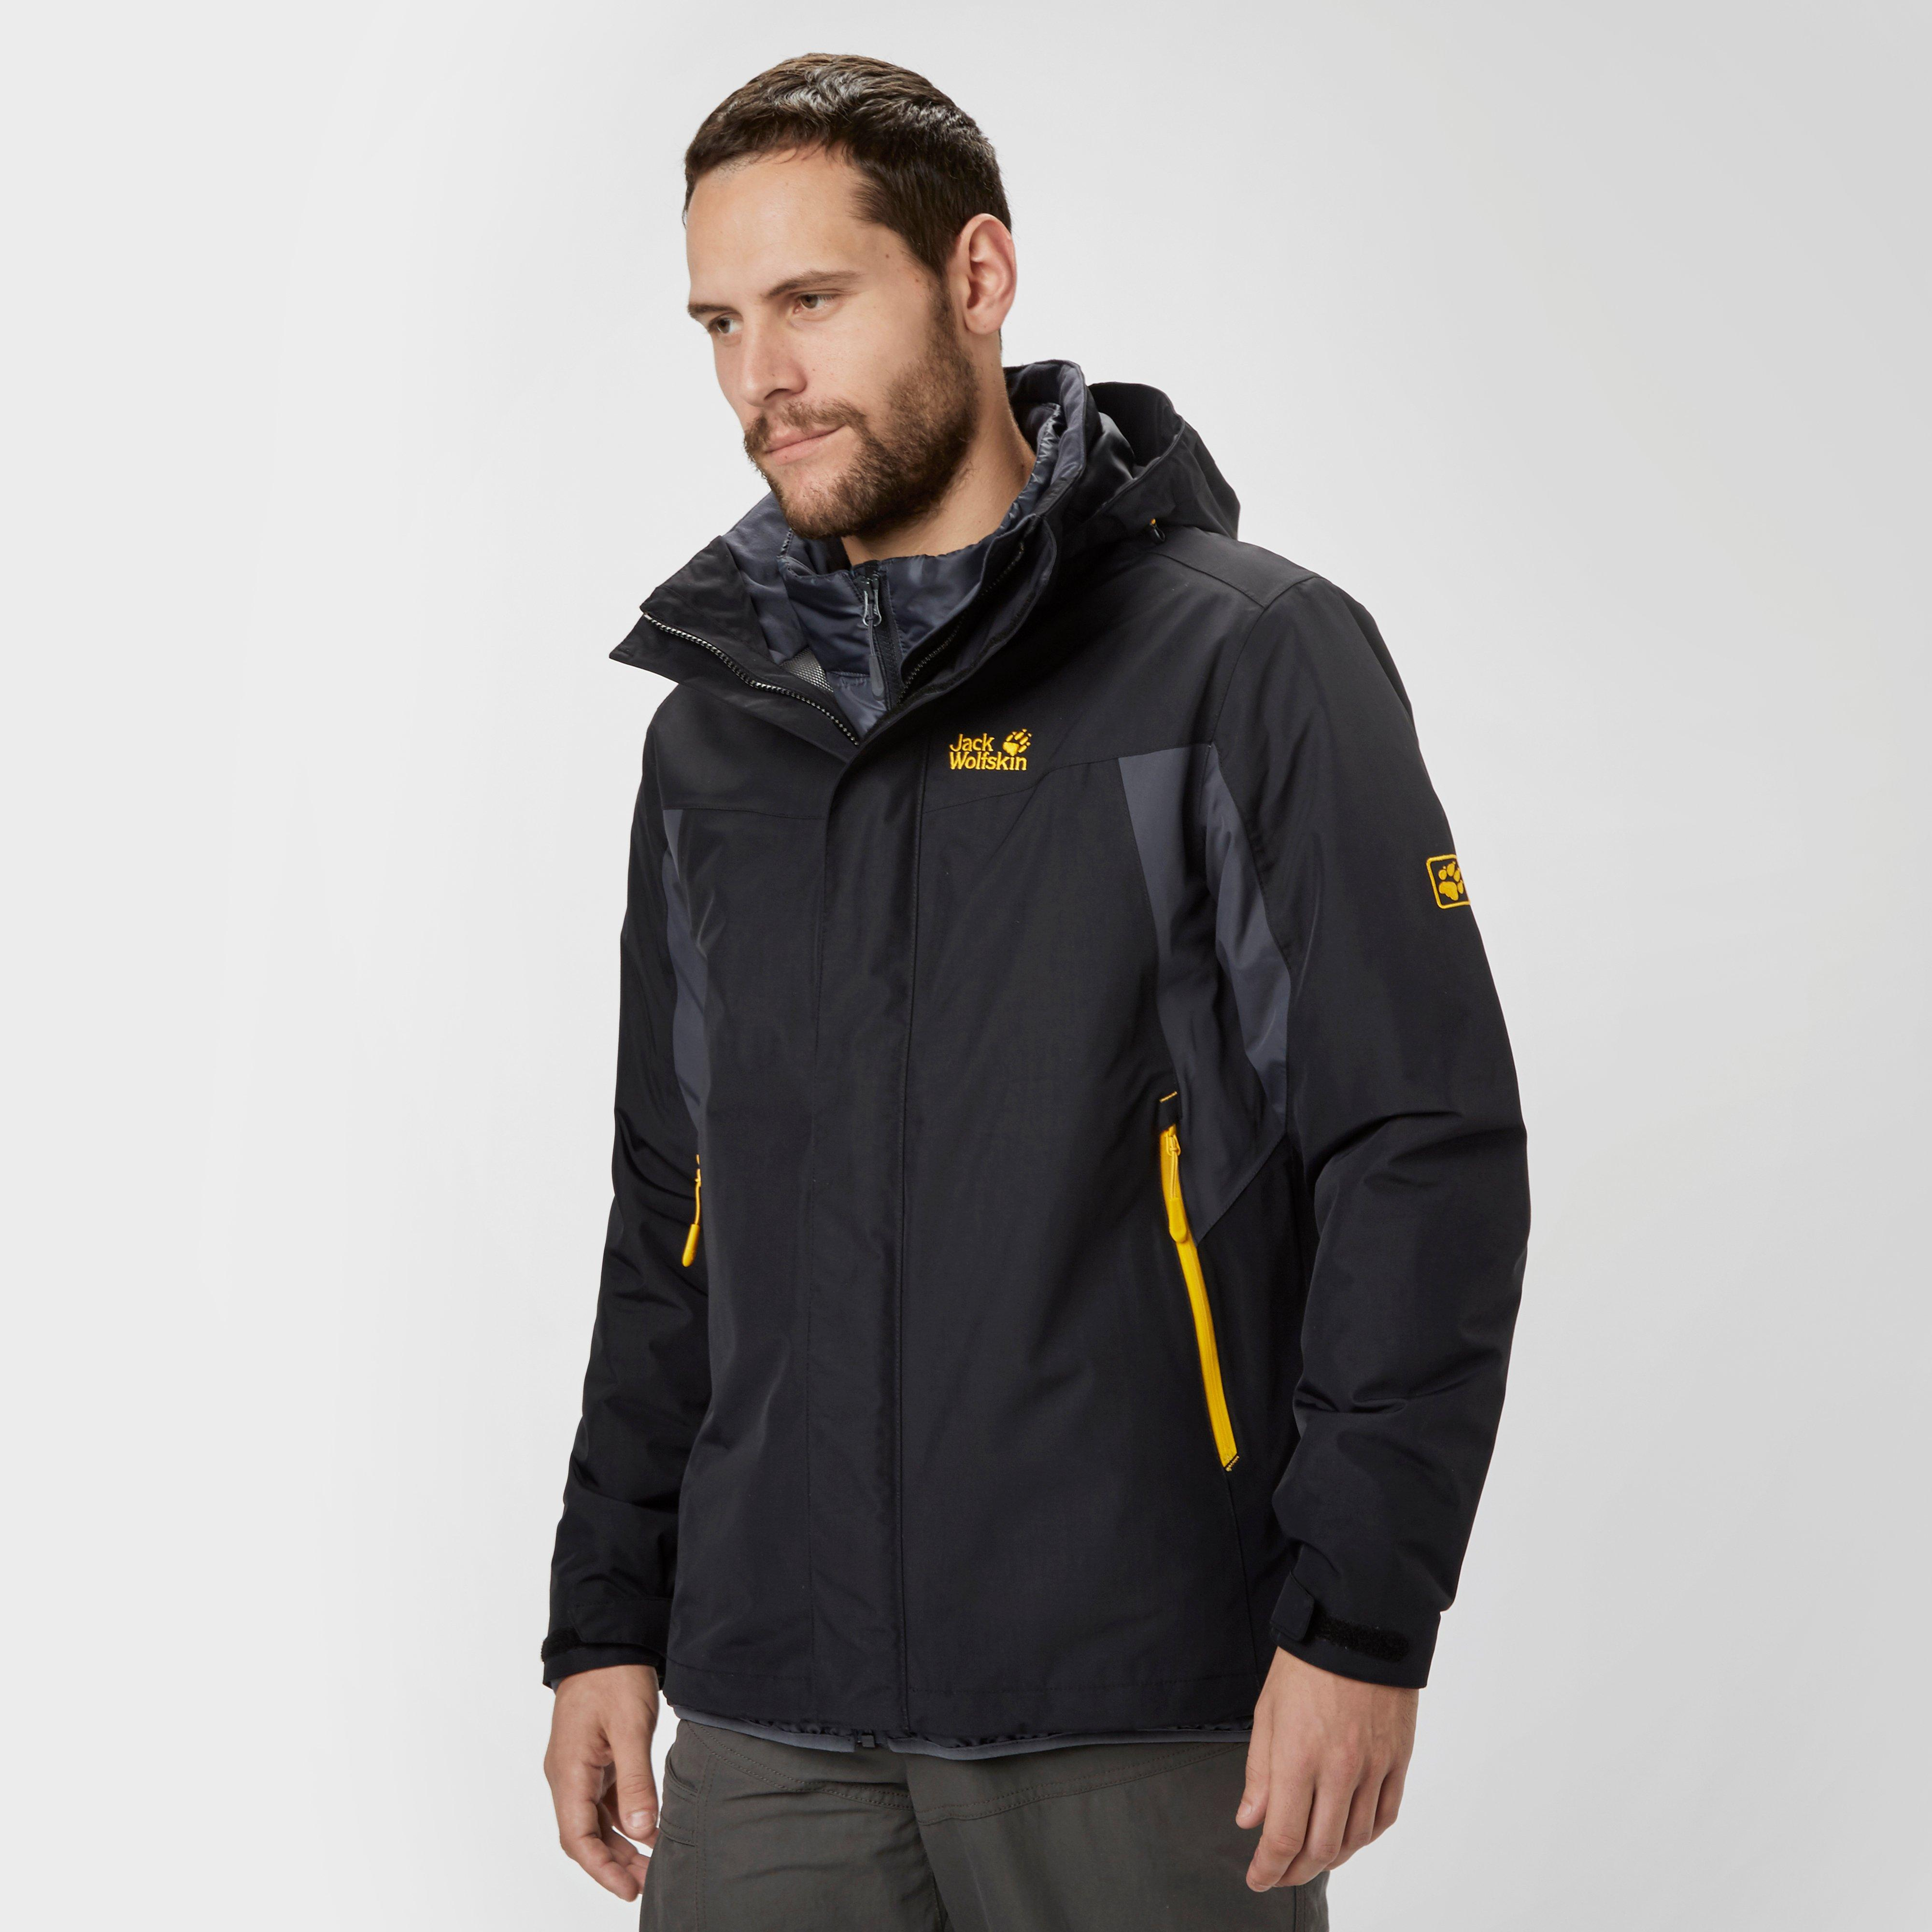 detailed look c47fd 4463c Details about New Jack Wolfskin Men's Mora 3 In 1 Jacket Outdoor Clothing